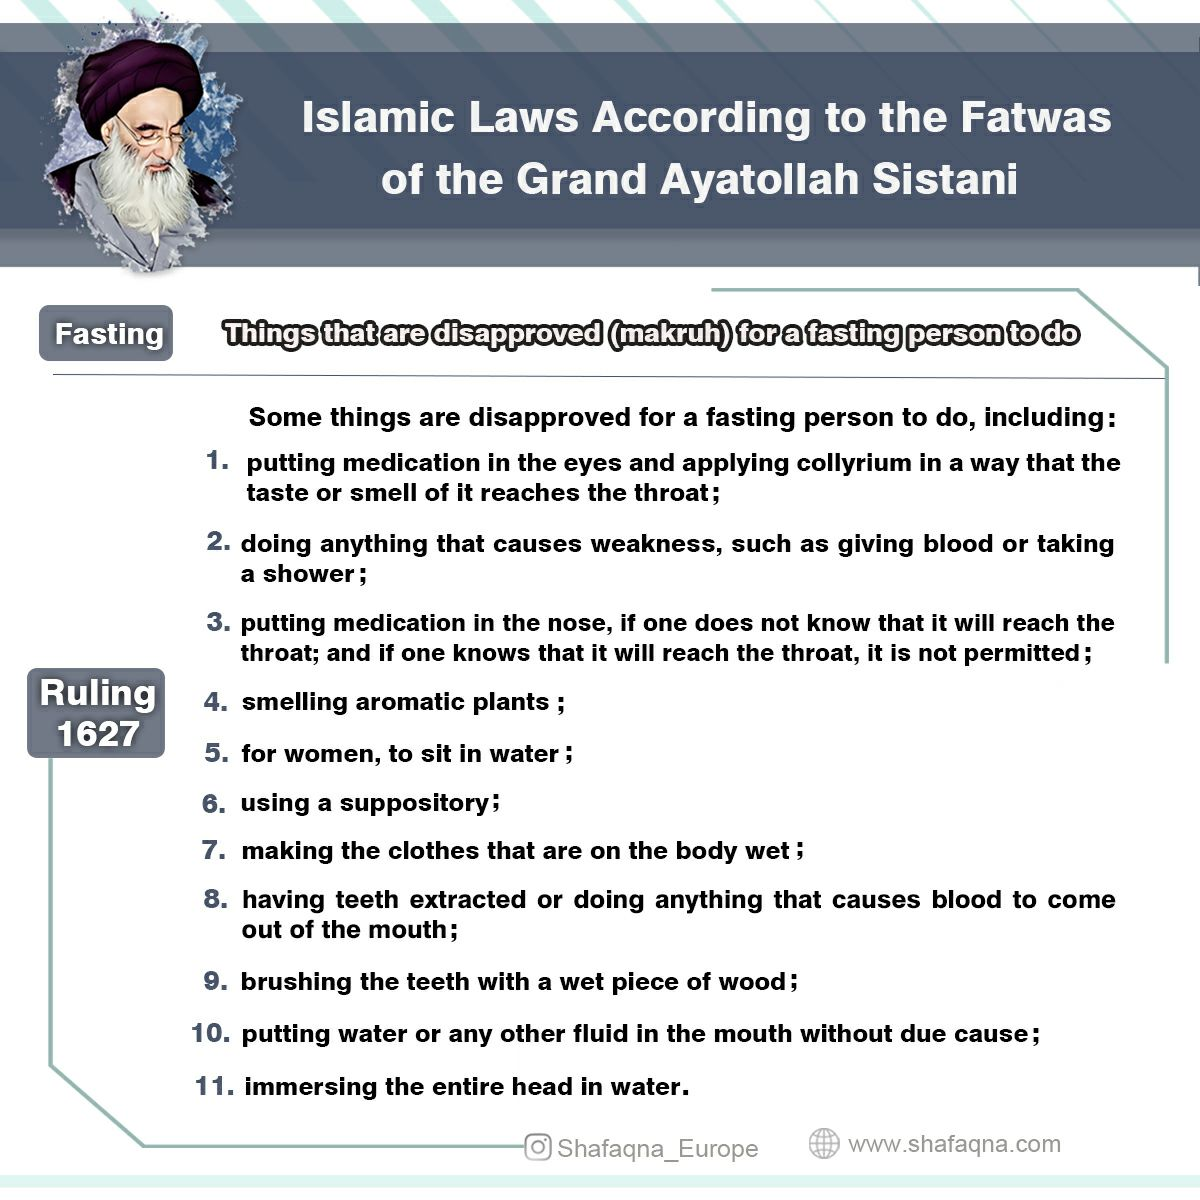 Fatwa on fasting, Ayatollah Sistani